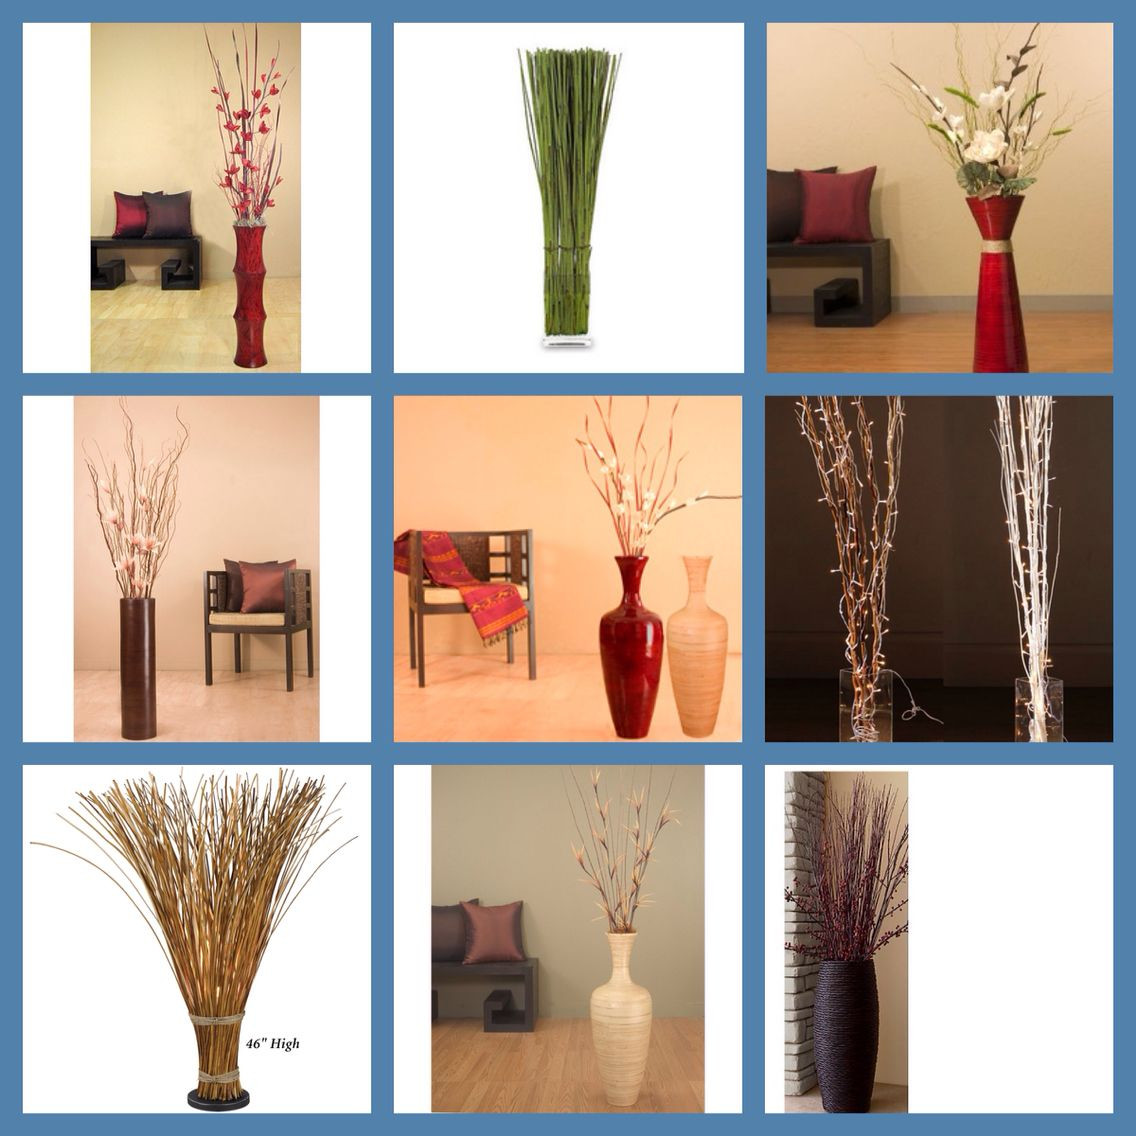 Buy Floor Vases Online Of Reeds Tall Flowers to Put In the Floor Vase Wish List Inside Reeds Tall Flowers to Put In the Floor Vase the Floor Home Projects